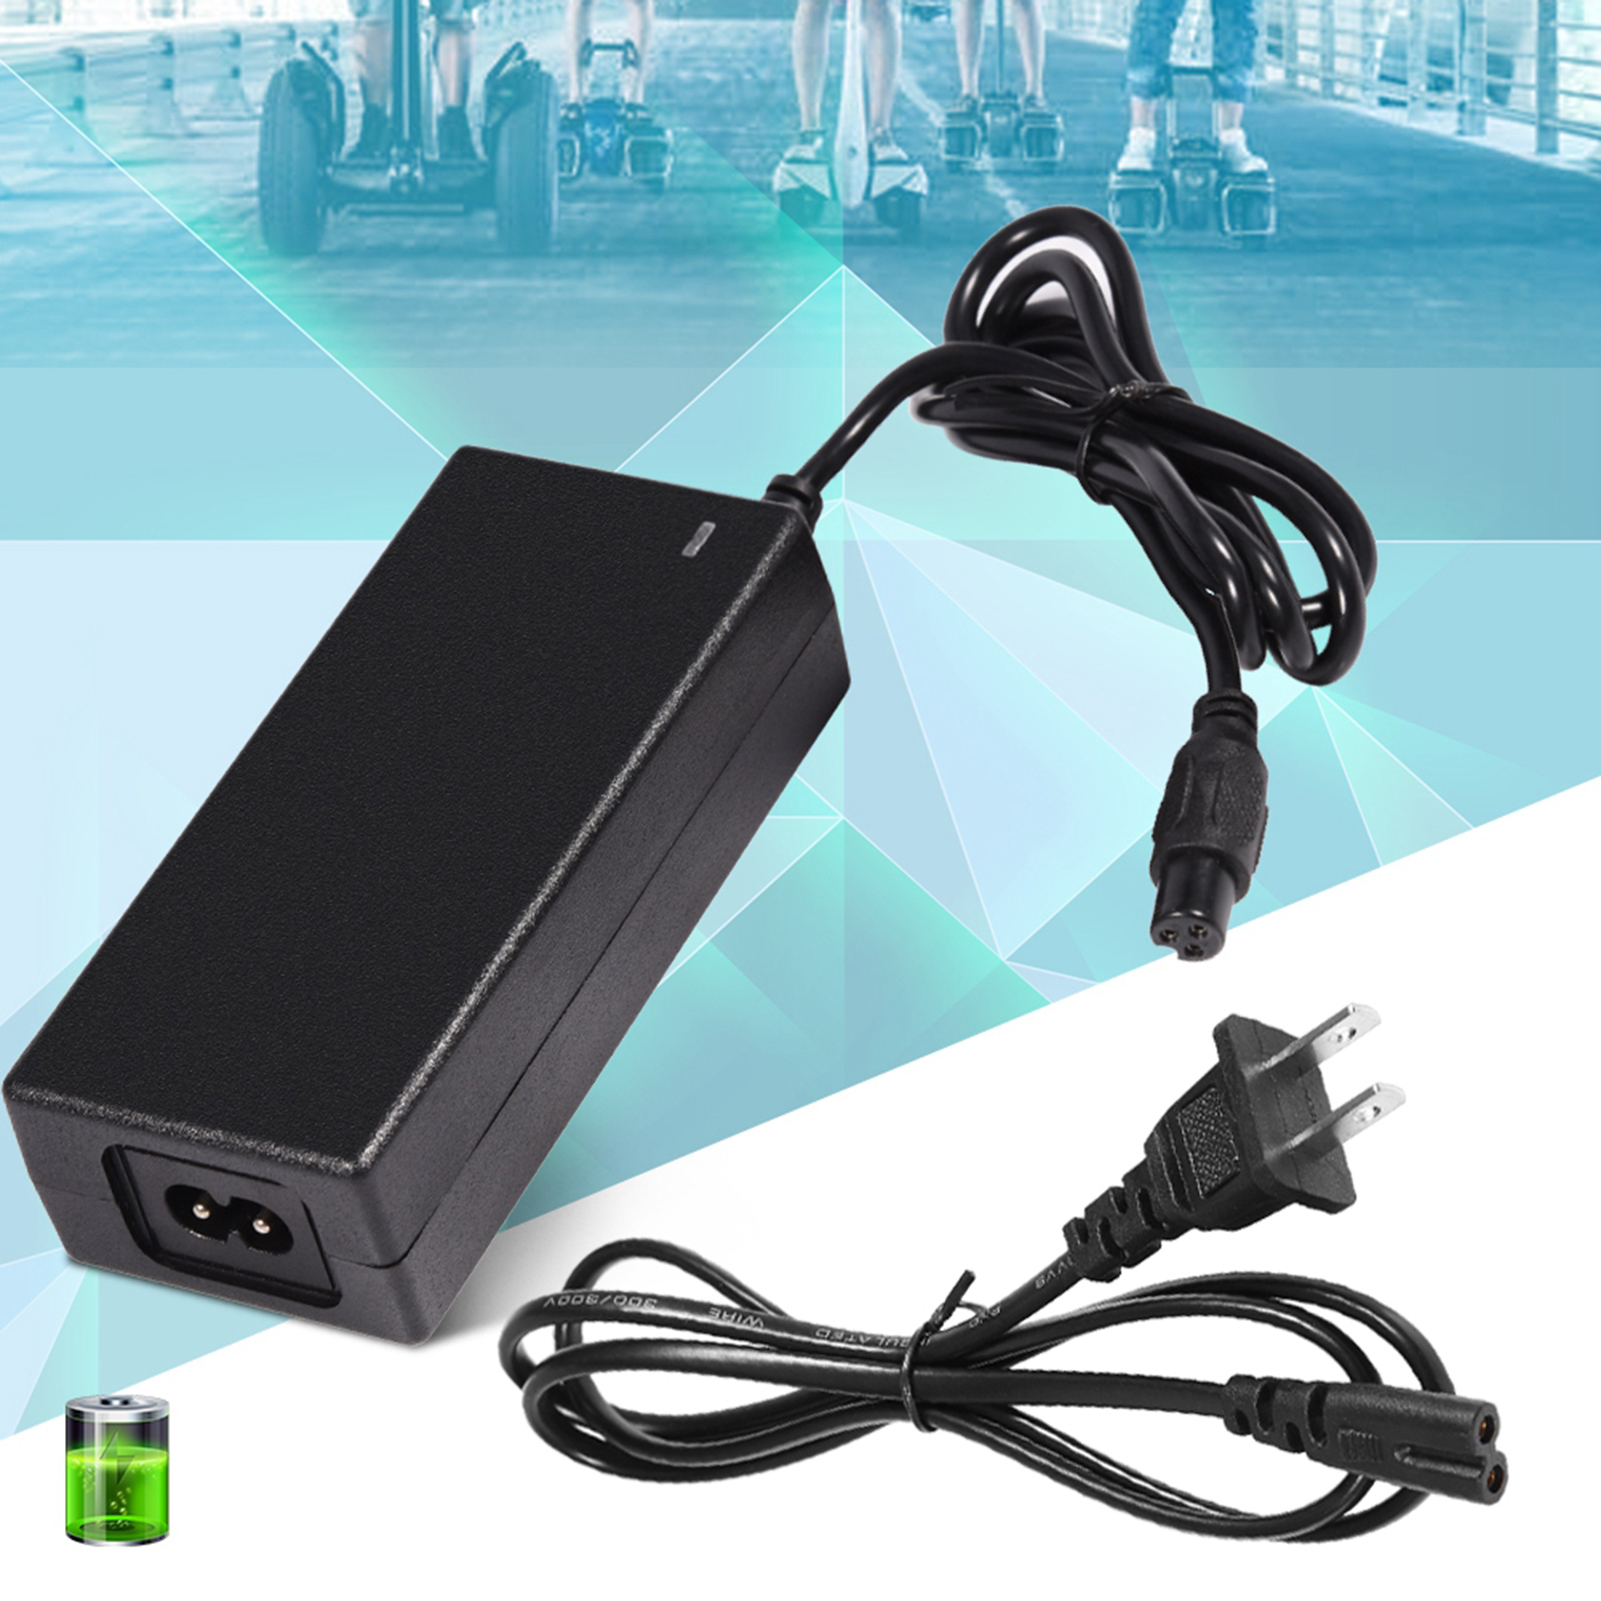 42V-2A-Universal-Battery-Charger-for-Hoverboard-Smart-Balance-Scooter-Hoverboard thumbnail 11